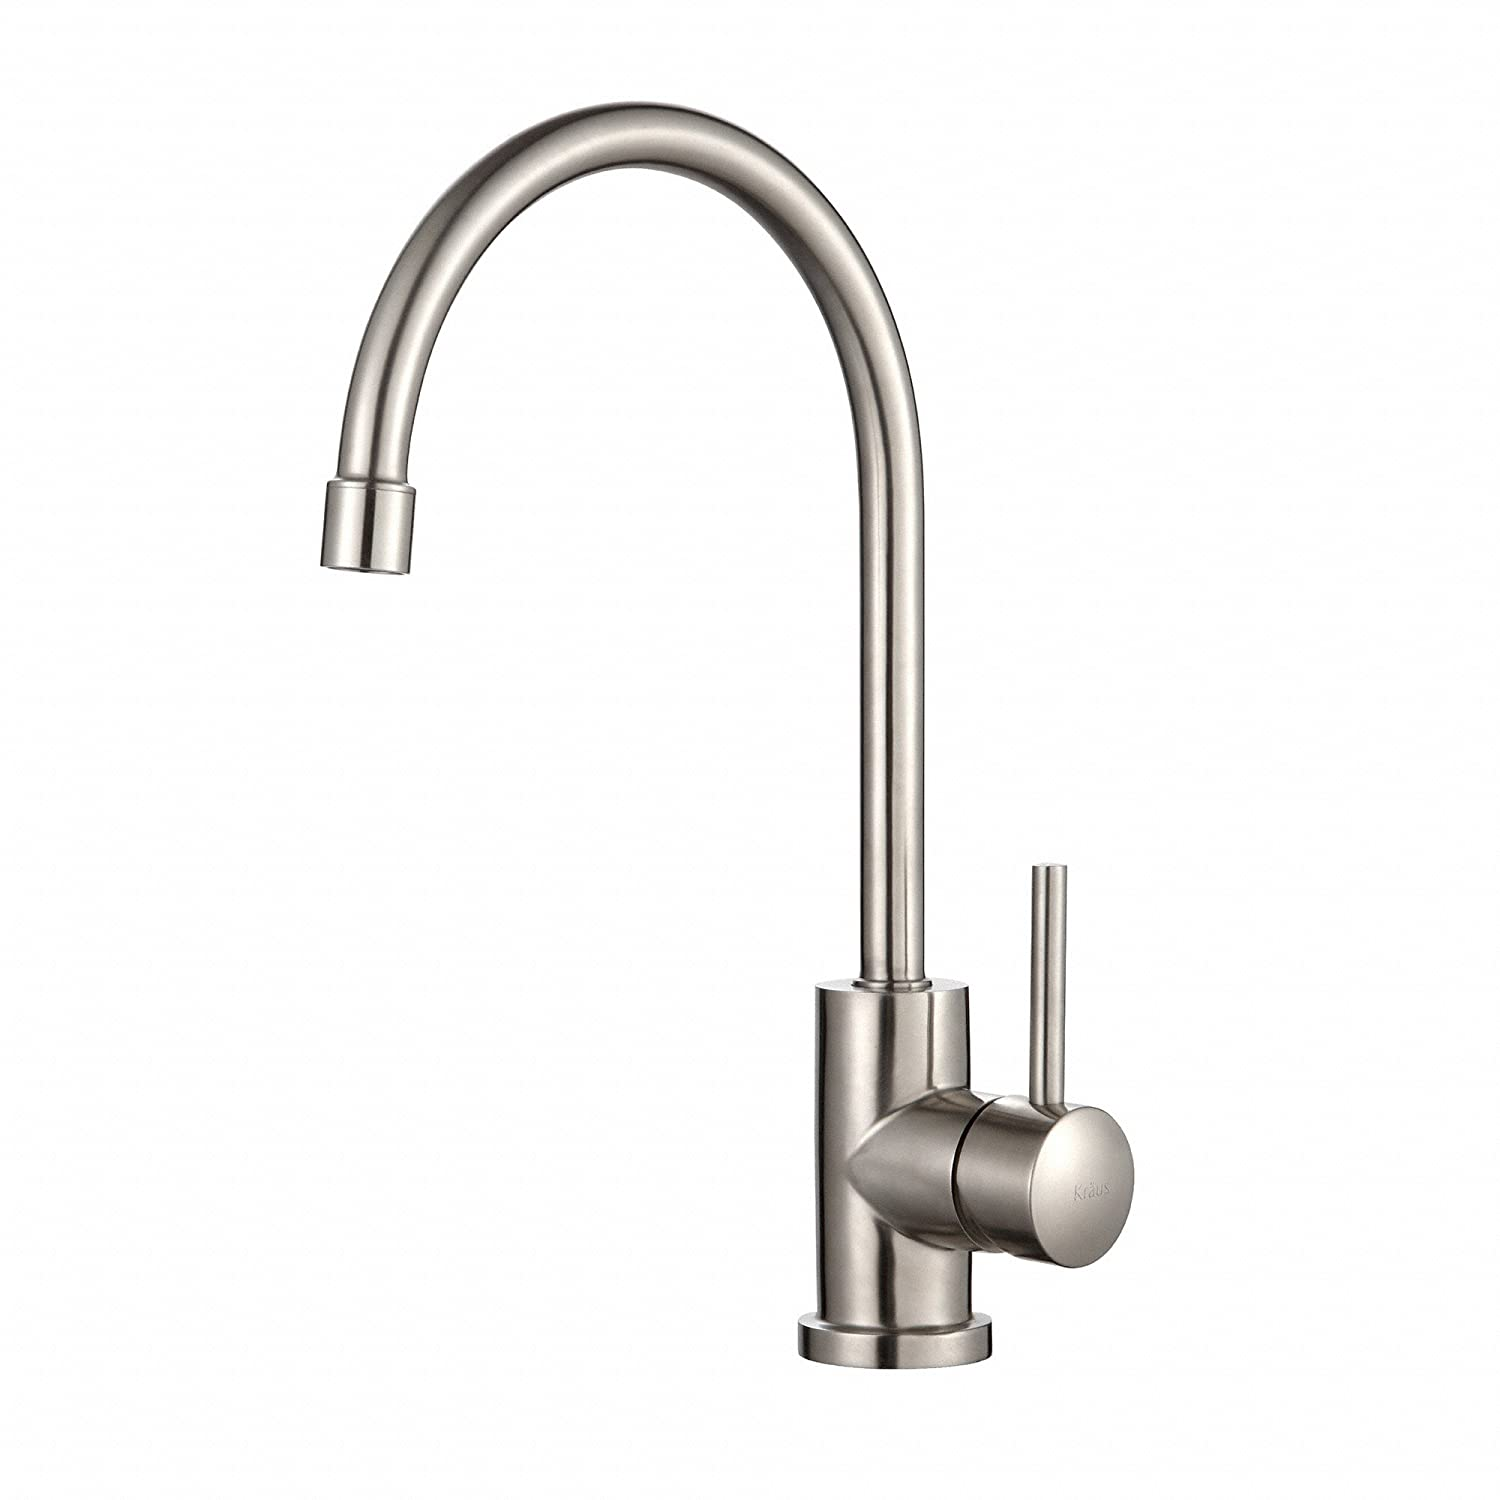 soap with lever cgi faucets ada kraus free stainless cast rate single compliant ajmadison spout gpm and ceramic chrome kpf drip cartridge kitchen bin dispenser steel ksd flow faucet